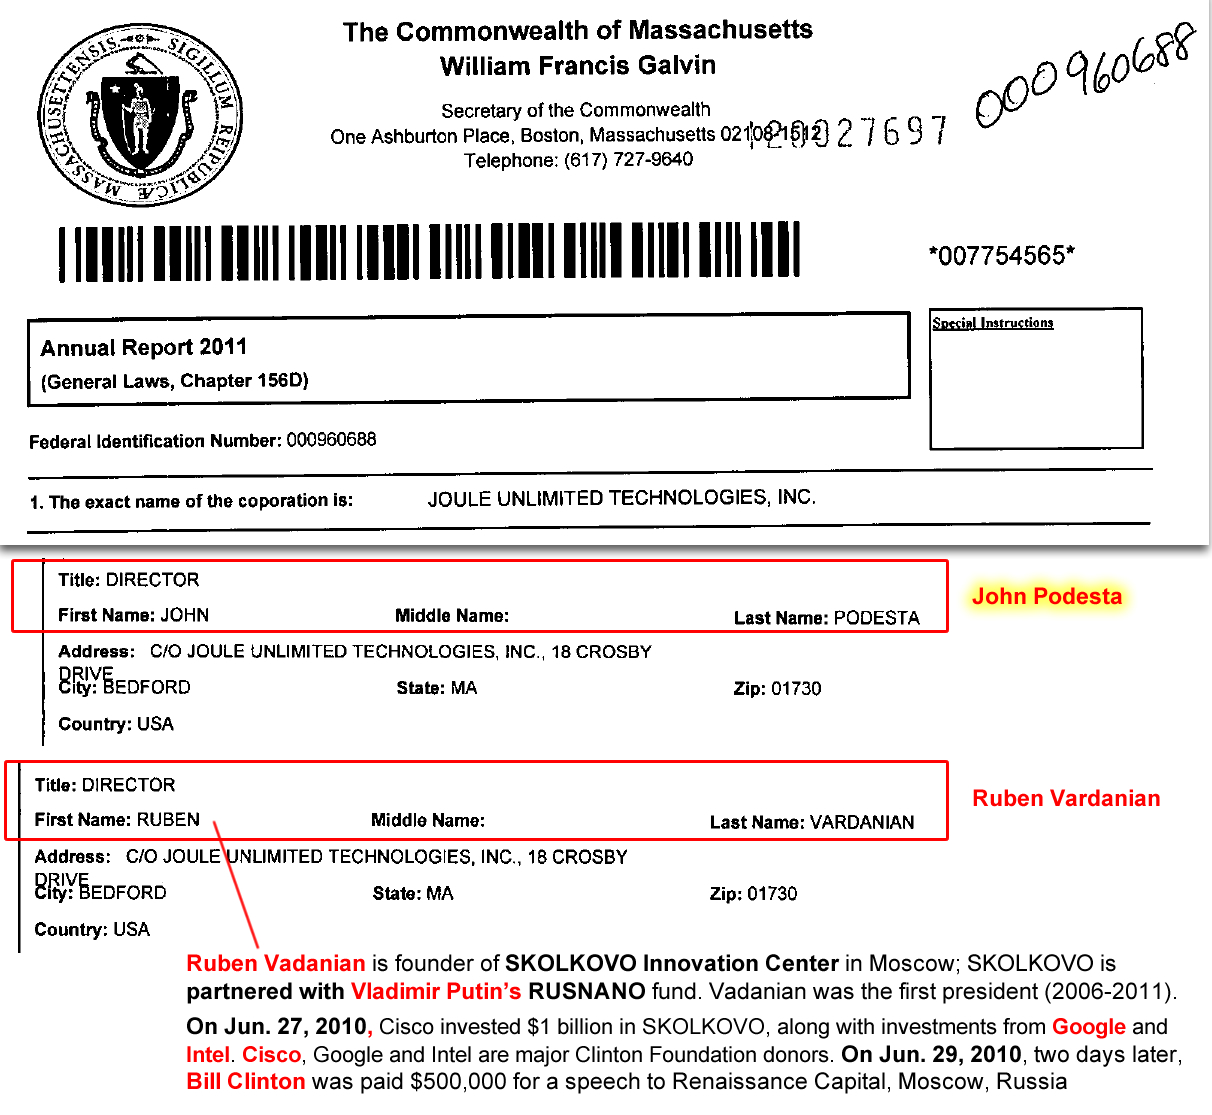 Joule Unlimited. (Dec. 31, 2011). Annual Report for Joule Unlimited Technologies Inc., John Podesta, Director. Fed. EIN 000960688MA. Secretary of the Commonwealth of Massachusetts.